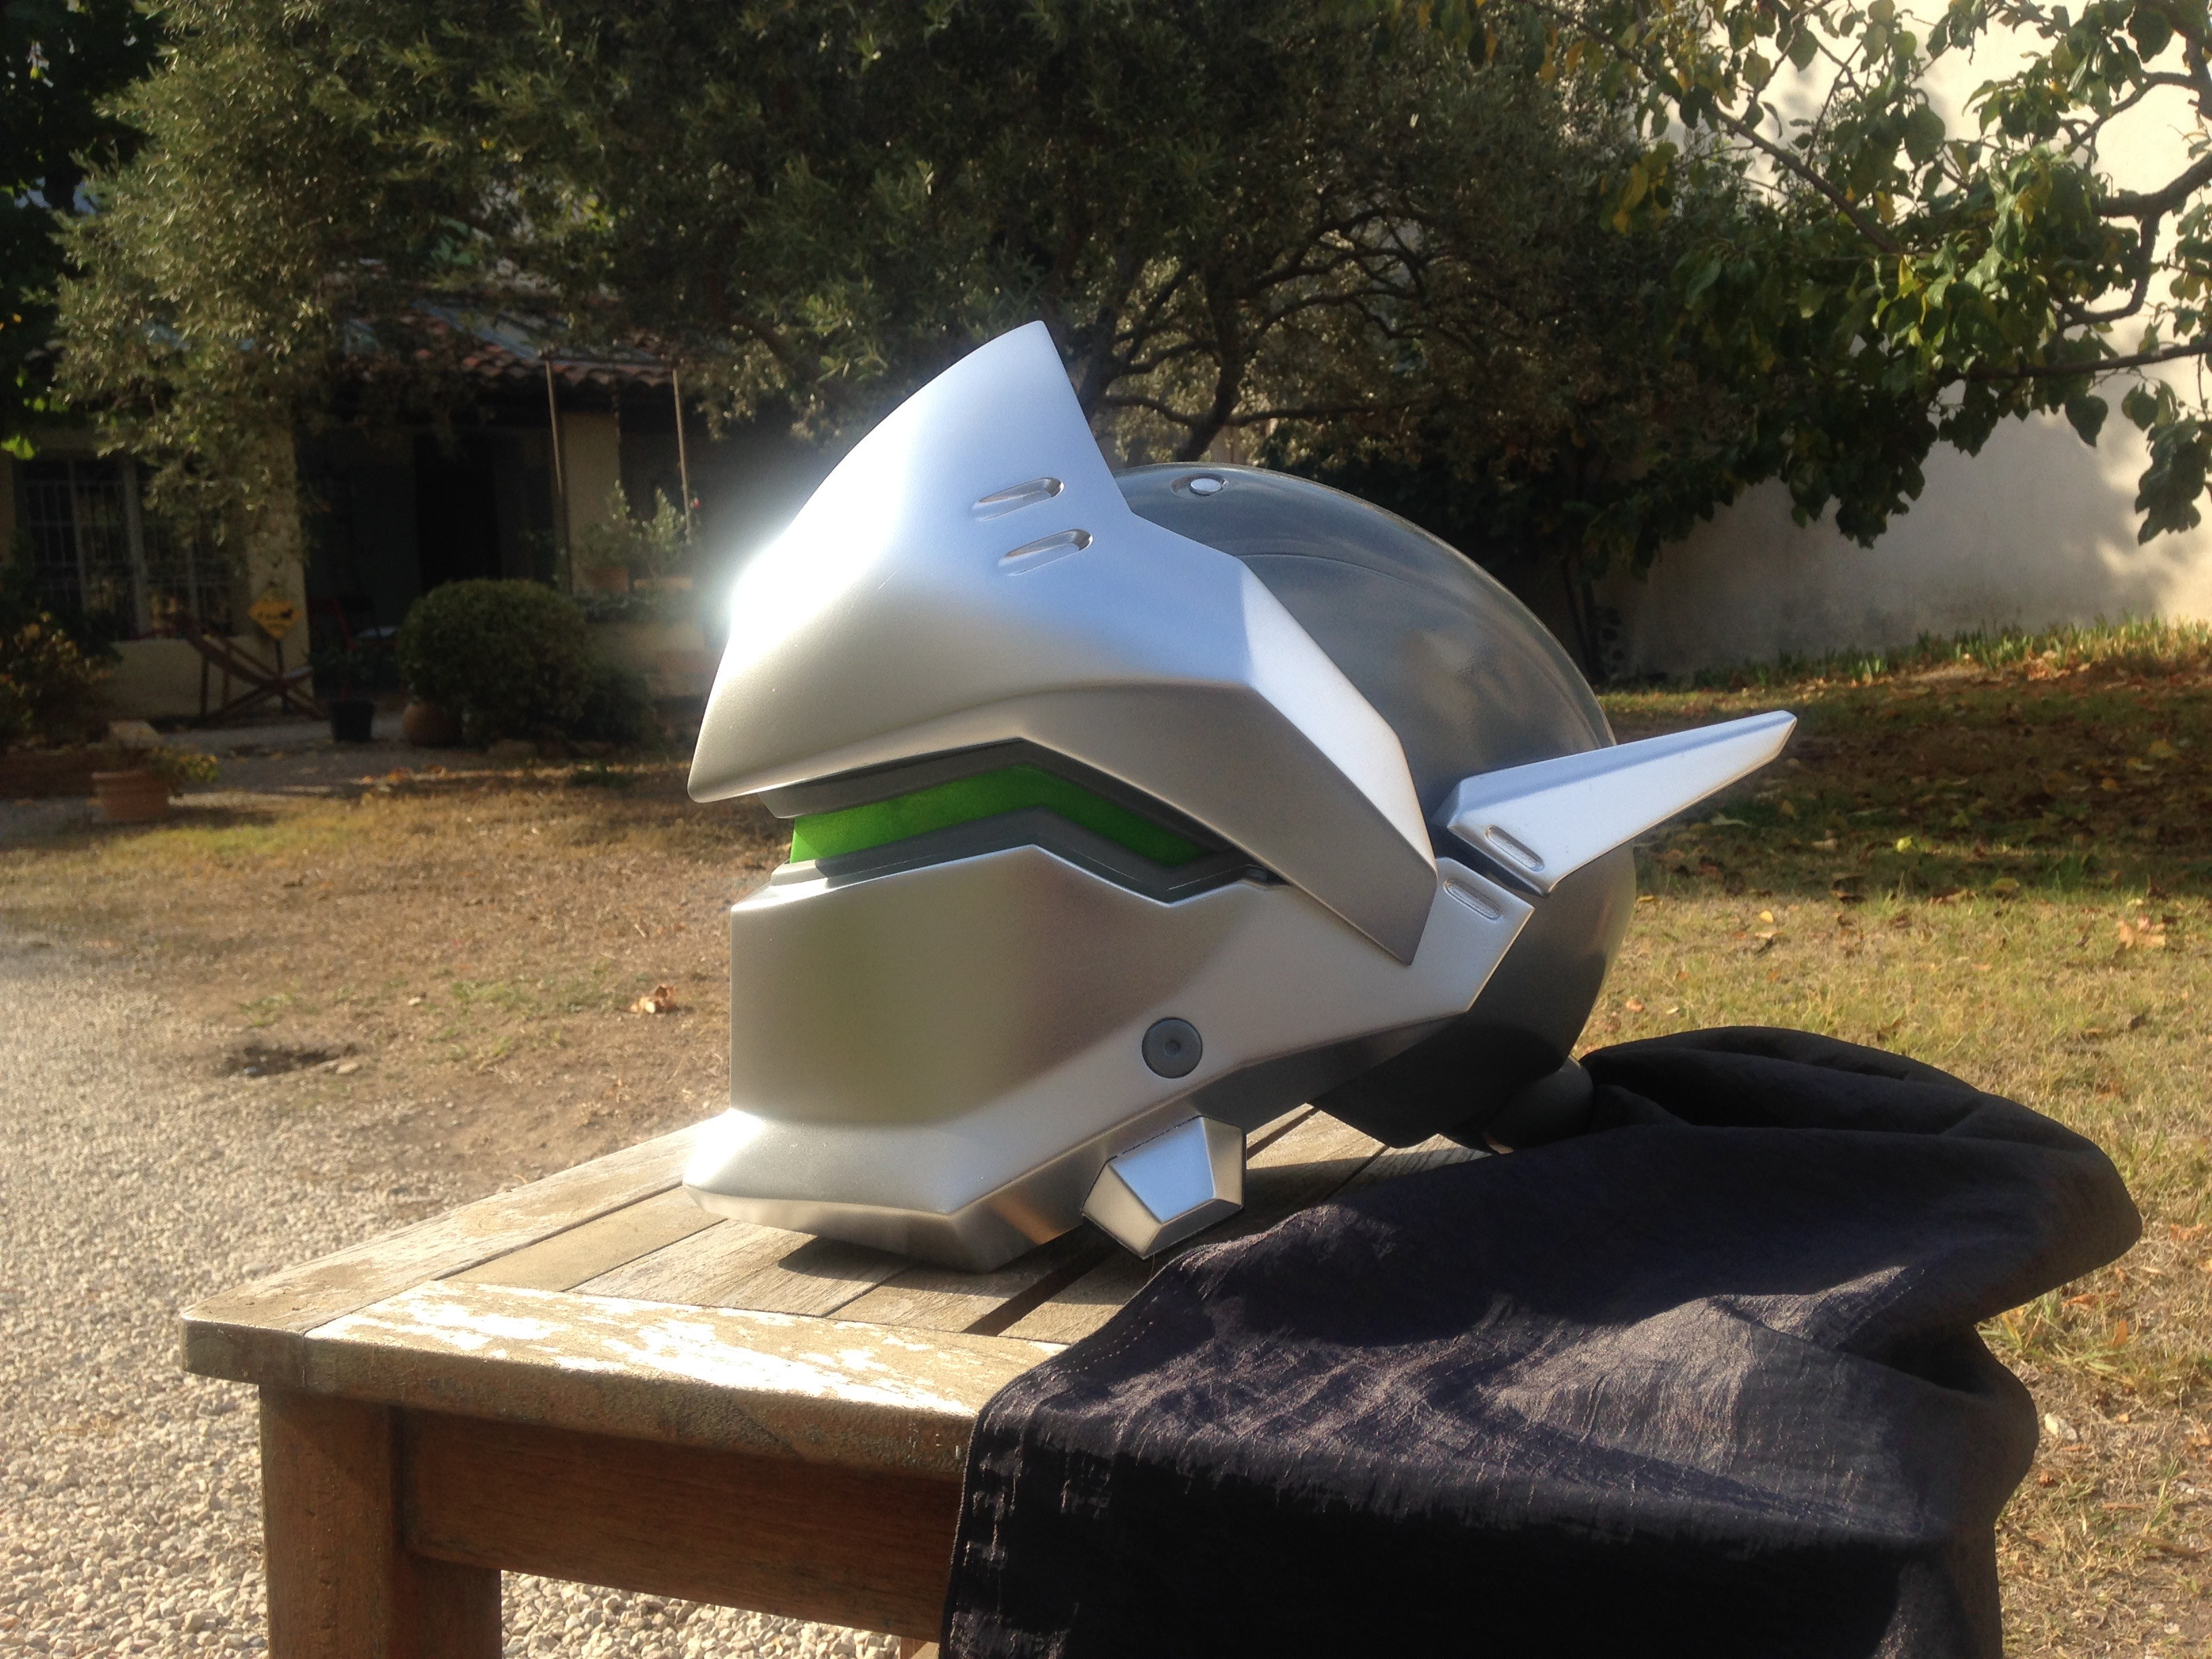 This is my (almost) finished Genji's helmet. Scroll down to see the progress